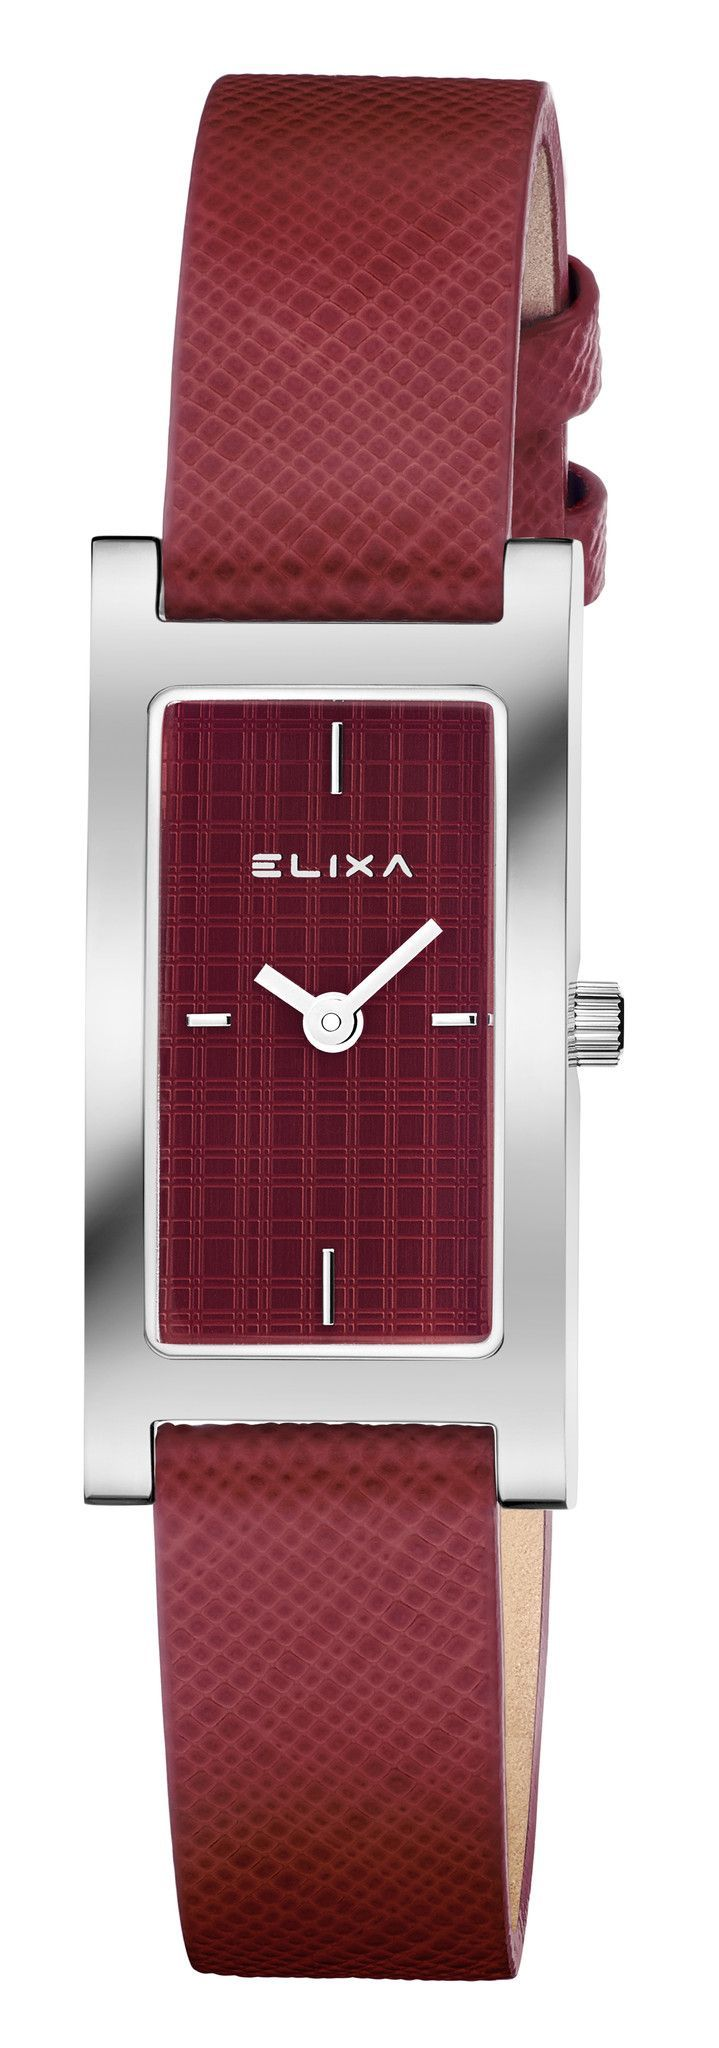 100% Authentic with 2-Year Elixa Backed Warranty Included. Item Elixa Women's Watch Model # E105-L421 Collection Finesse Case Rectangular Stainless Steel Case Back Snap-Down Stainless Steel Bezel Fixe